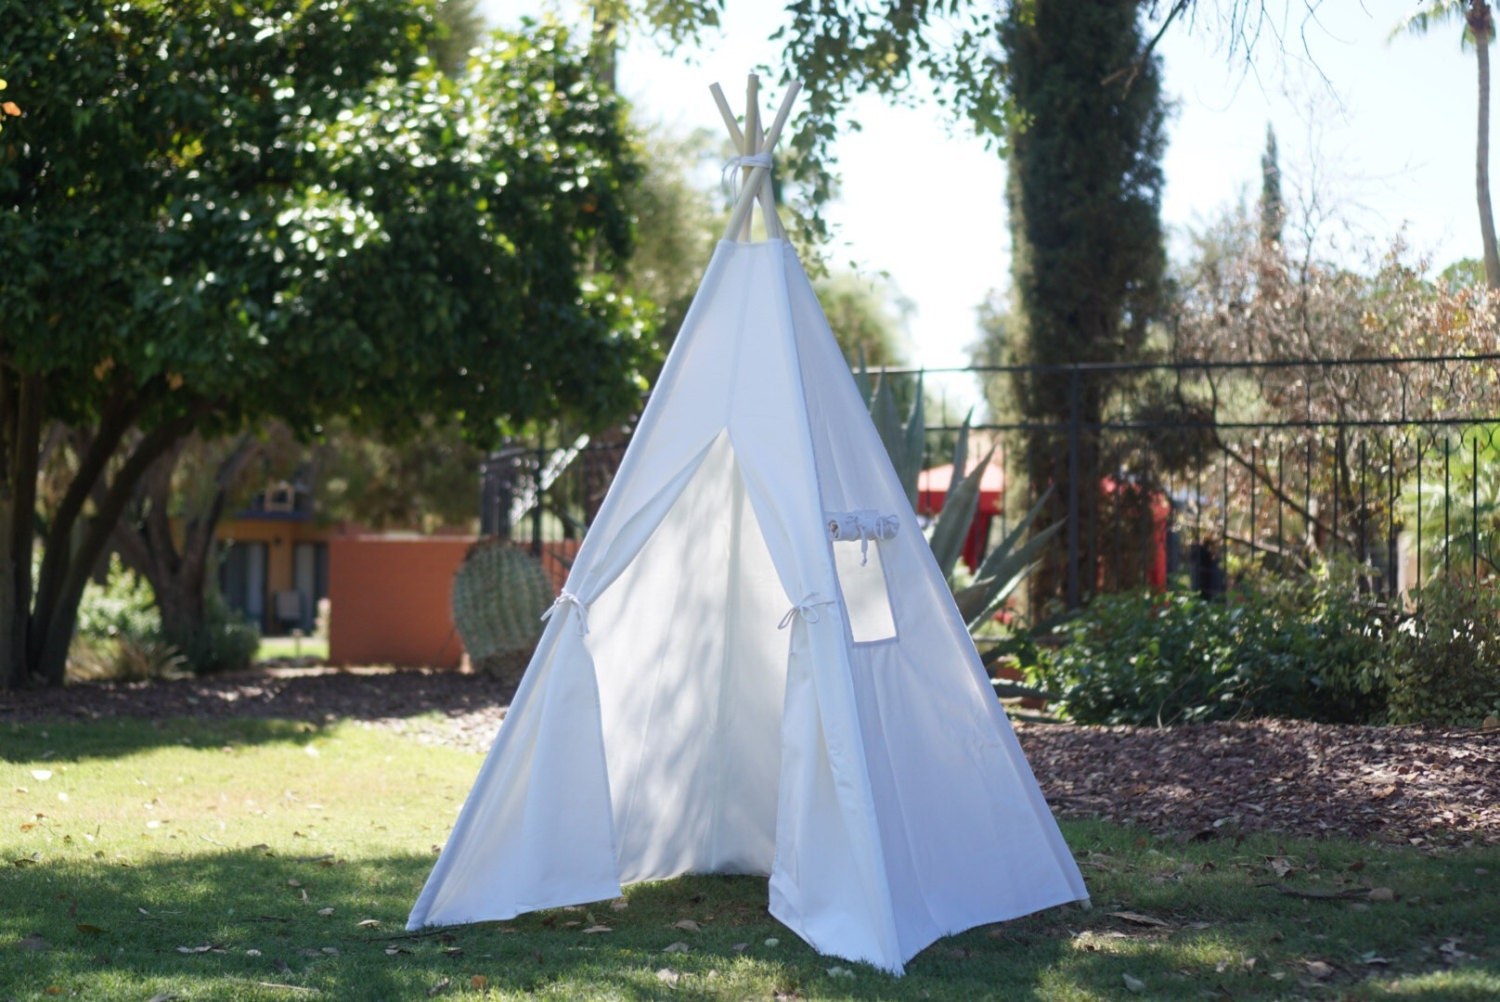 CANOPY 36u0027u0027 kids Teepee in white canvas/ canvas Play tent / Tipi Wigwam or Playhouse with door Ties & CANOPY 36u0027u0027 kids Teepee in white canvas/ canvas Play tent / Tipi ...